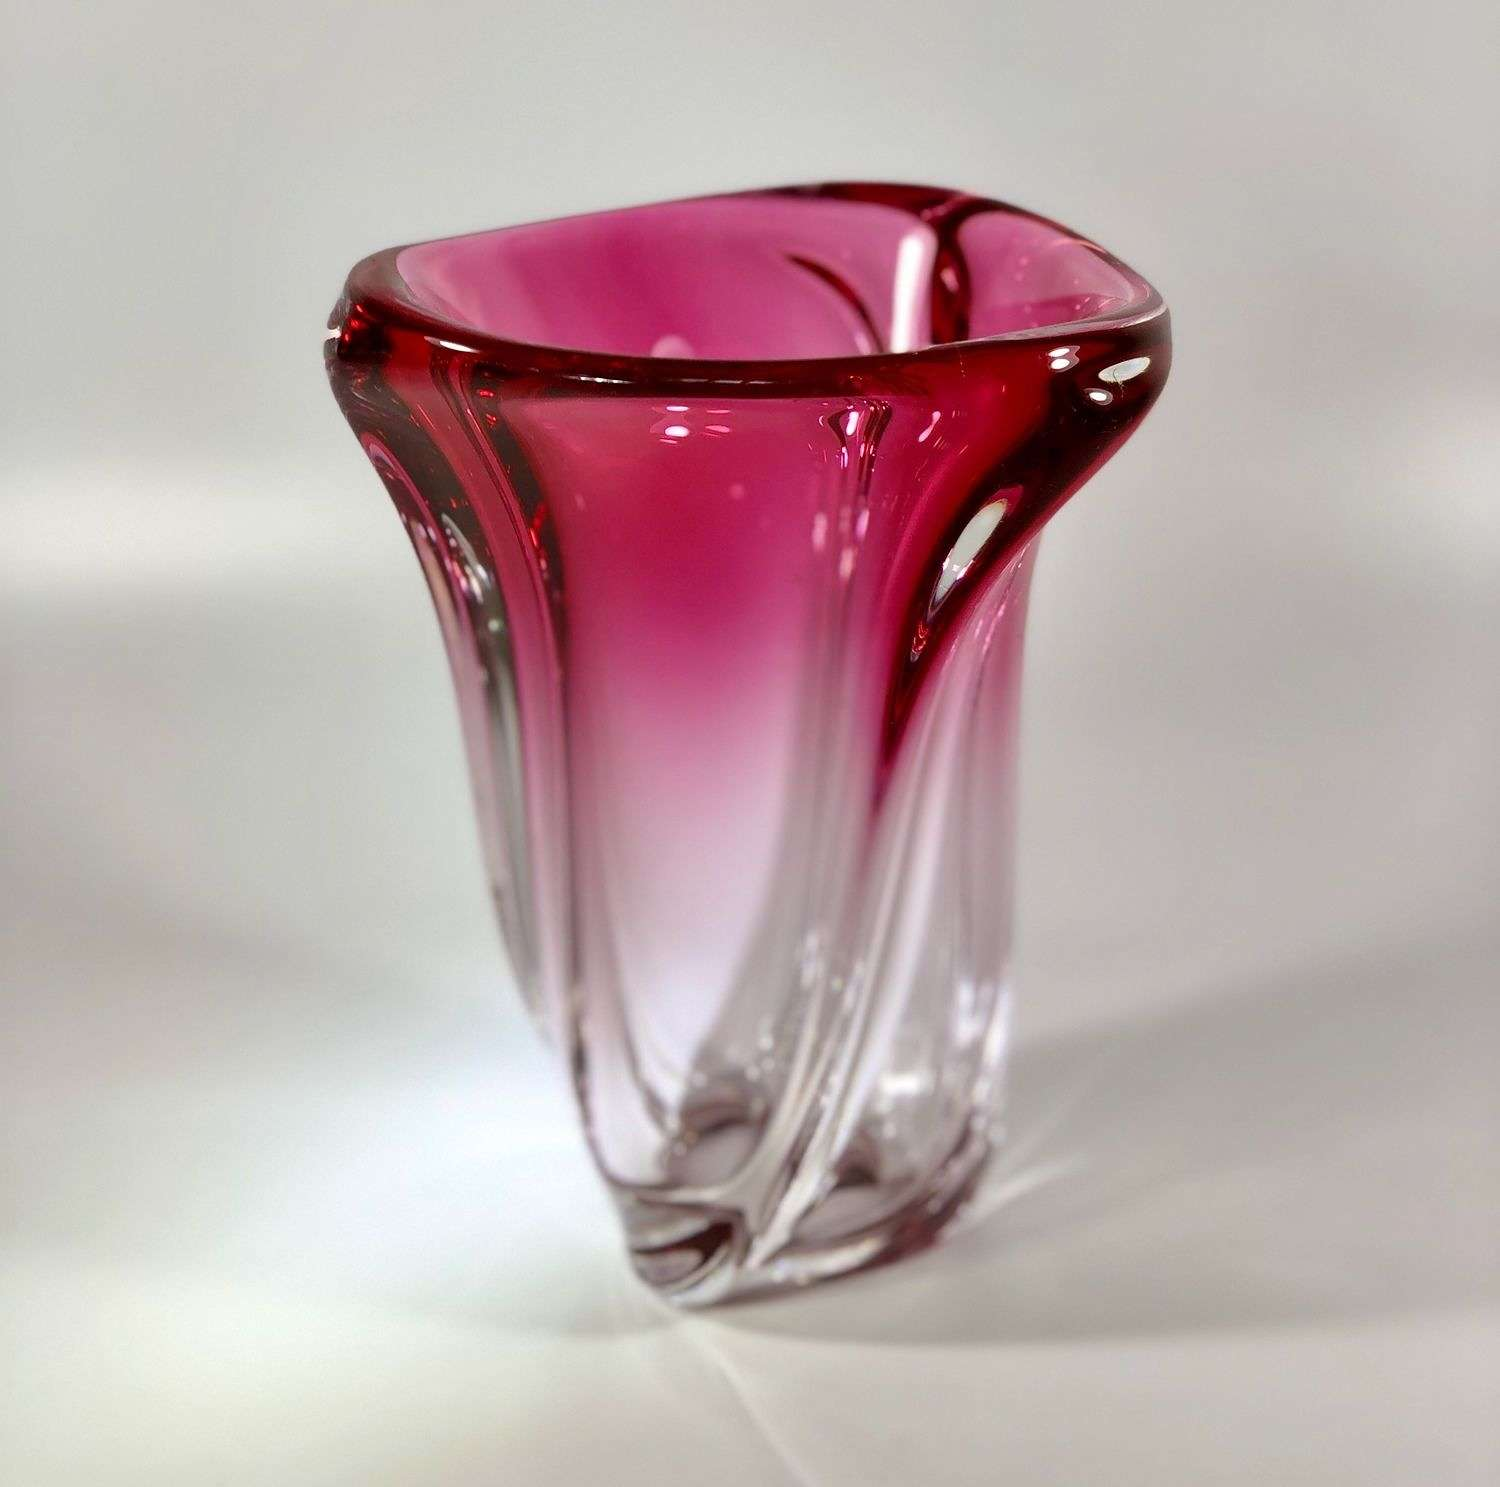 Pink crystal vase by Guido Bon for Val Saint Lambert